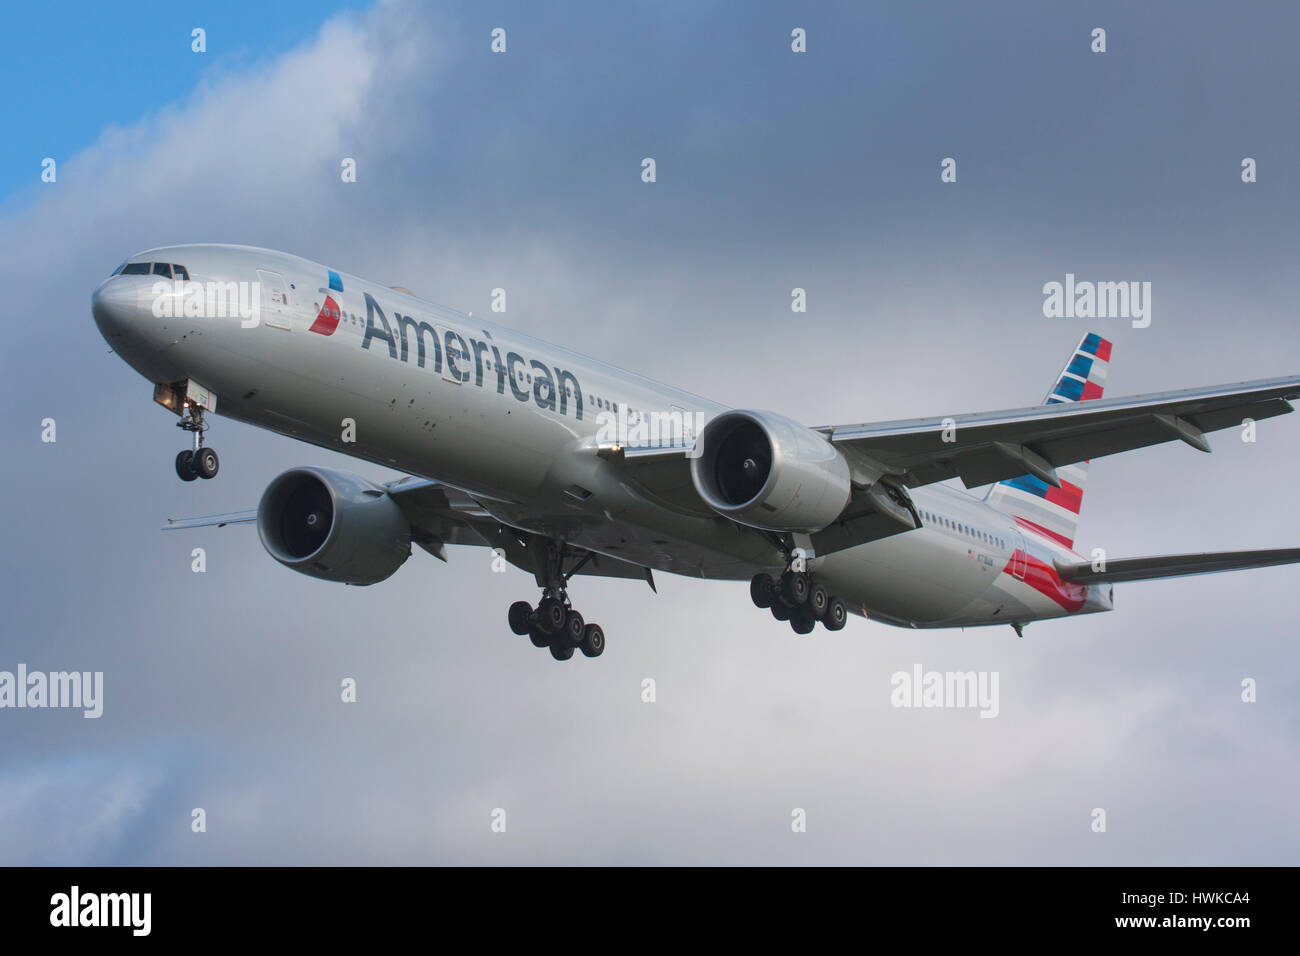 American Airlines Boeing 777-323/ER at London Heathrow Airport, UK - Stock Image